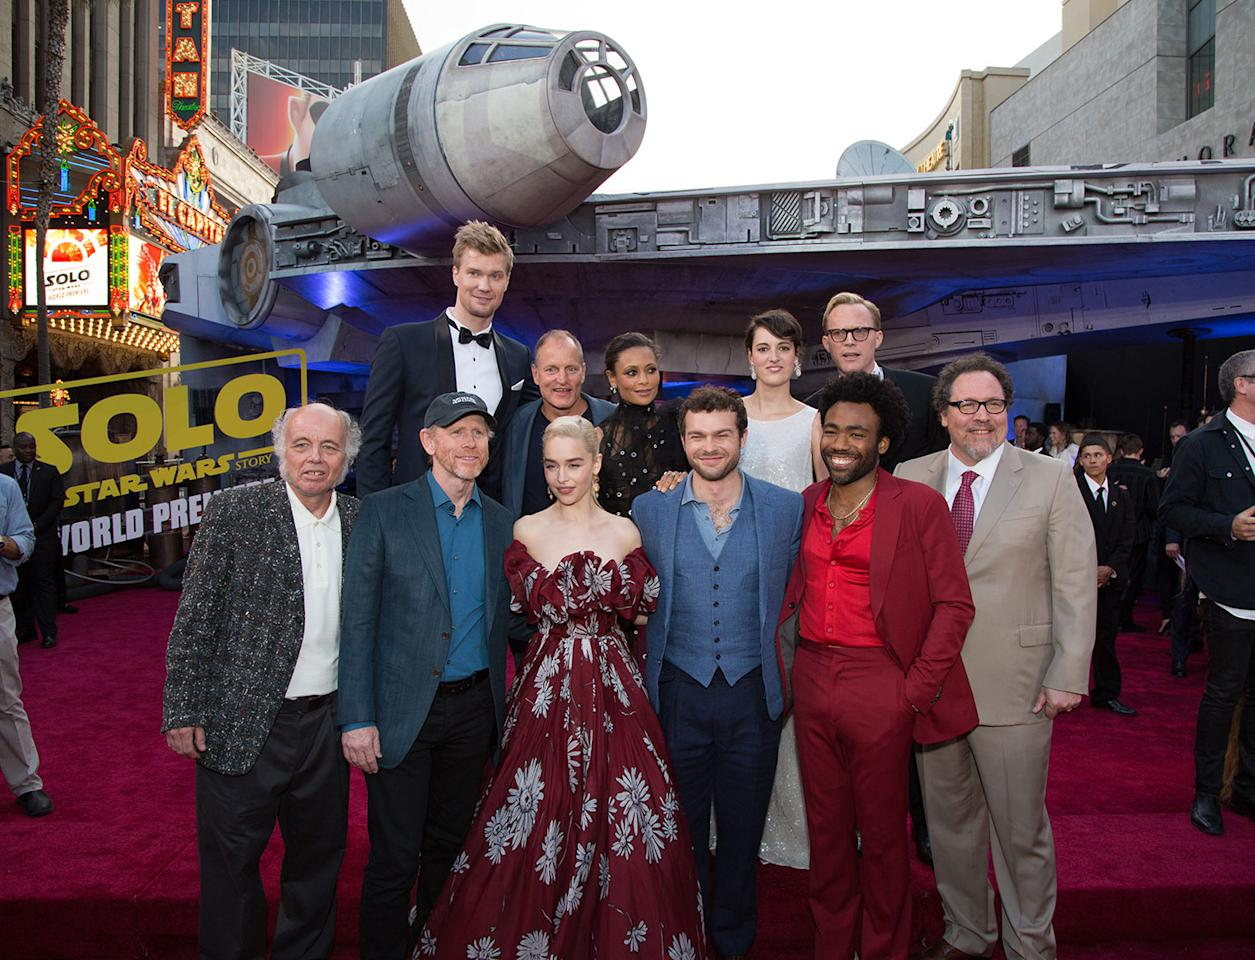 "<p>Back Row) Joonas Suotamo, Woody Harrelson, Thandie Newton, Phoebe Waller-Bridge, Paul Bettany, (Front Row) Clint Howard, Ron Howard, Emilia Clarke, Alden Enrenreich, Donald Glover, Jon Favreau attend the world premiere of ""Solo: A Star Wars Story"" in Hollywood on May 10, 2018..(Photo: Alex J. Berliner/ABImages). </p>"